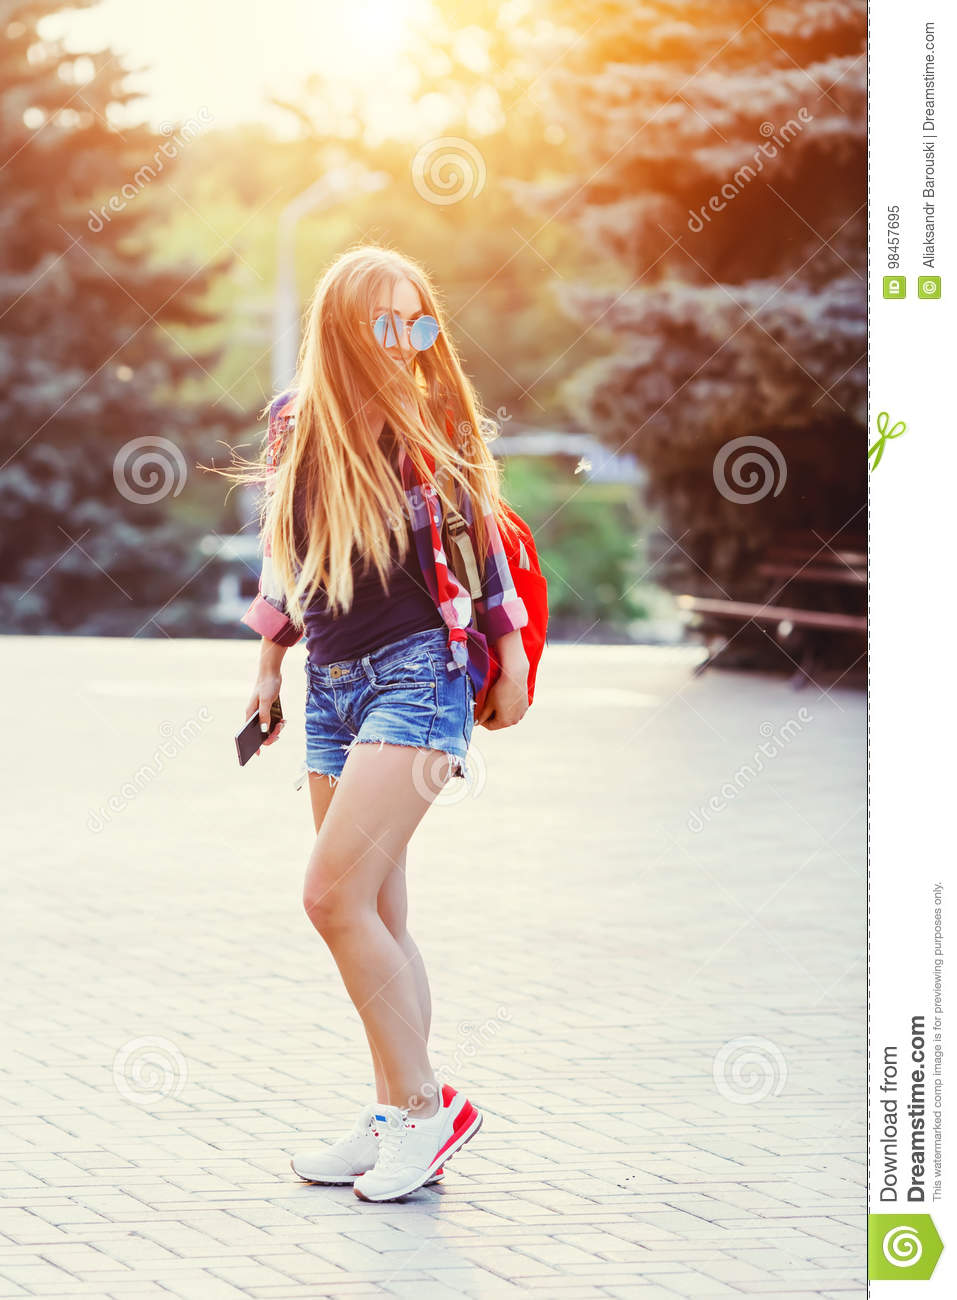 Fashion portrait of young pretty hipster woman outdoor with long hair and red backpack in the sunny summer street. The